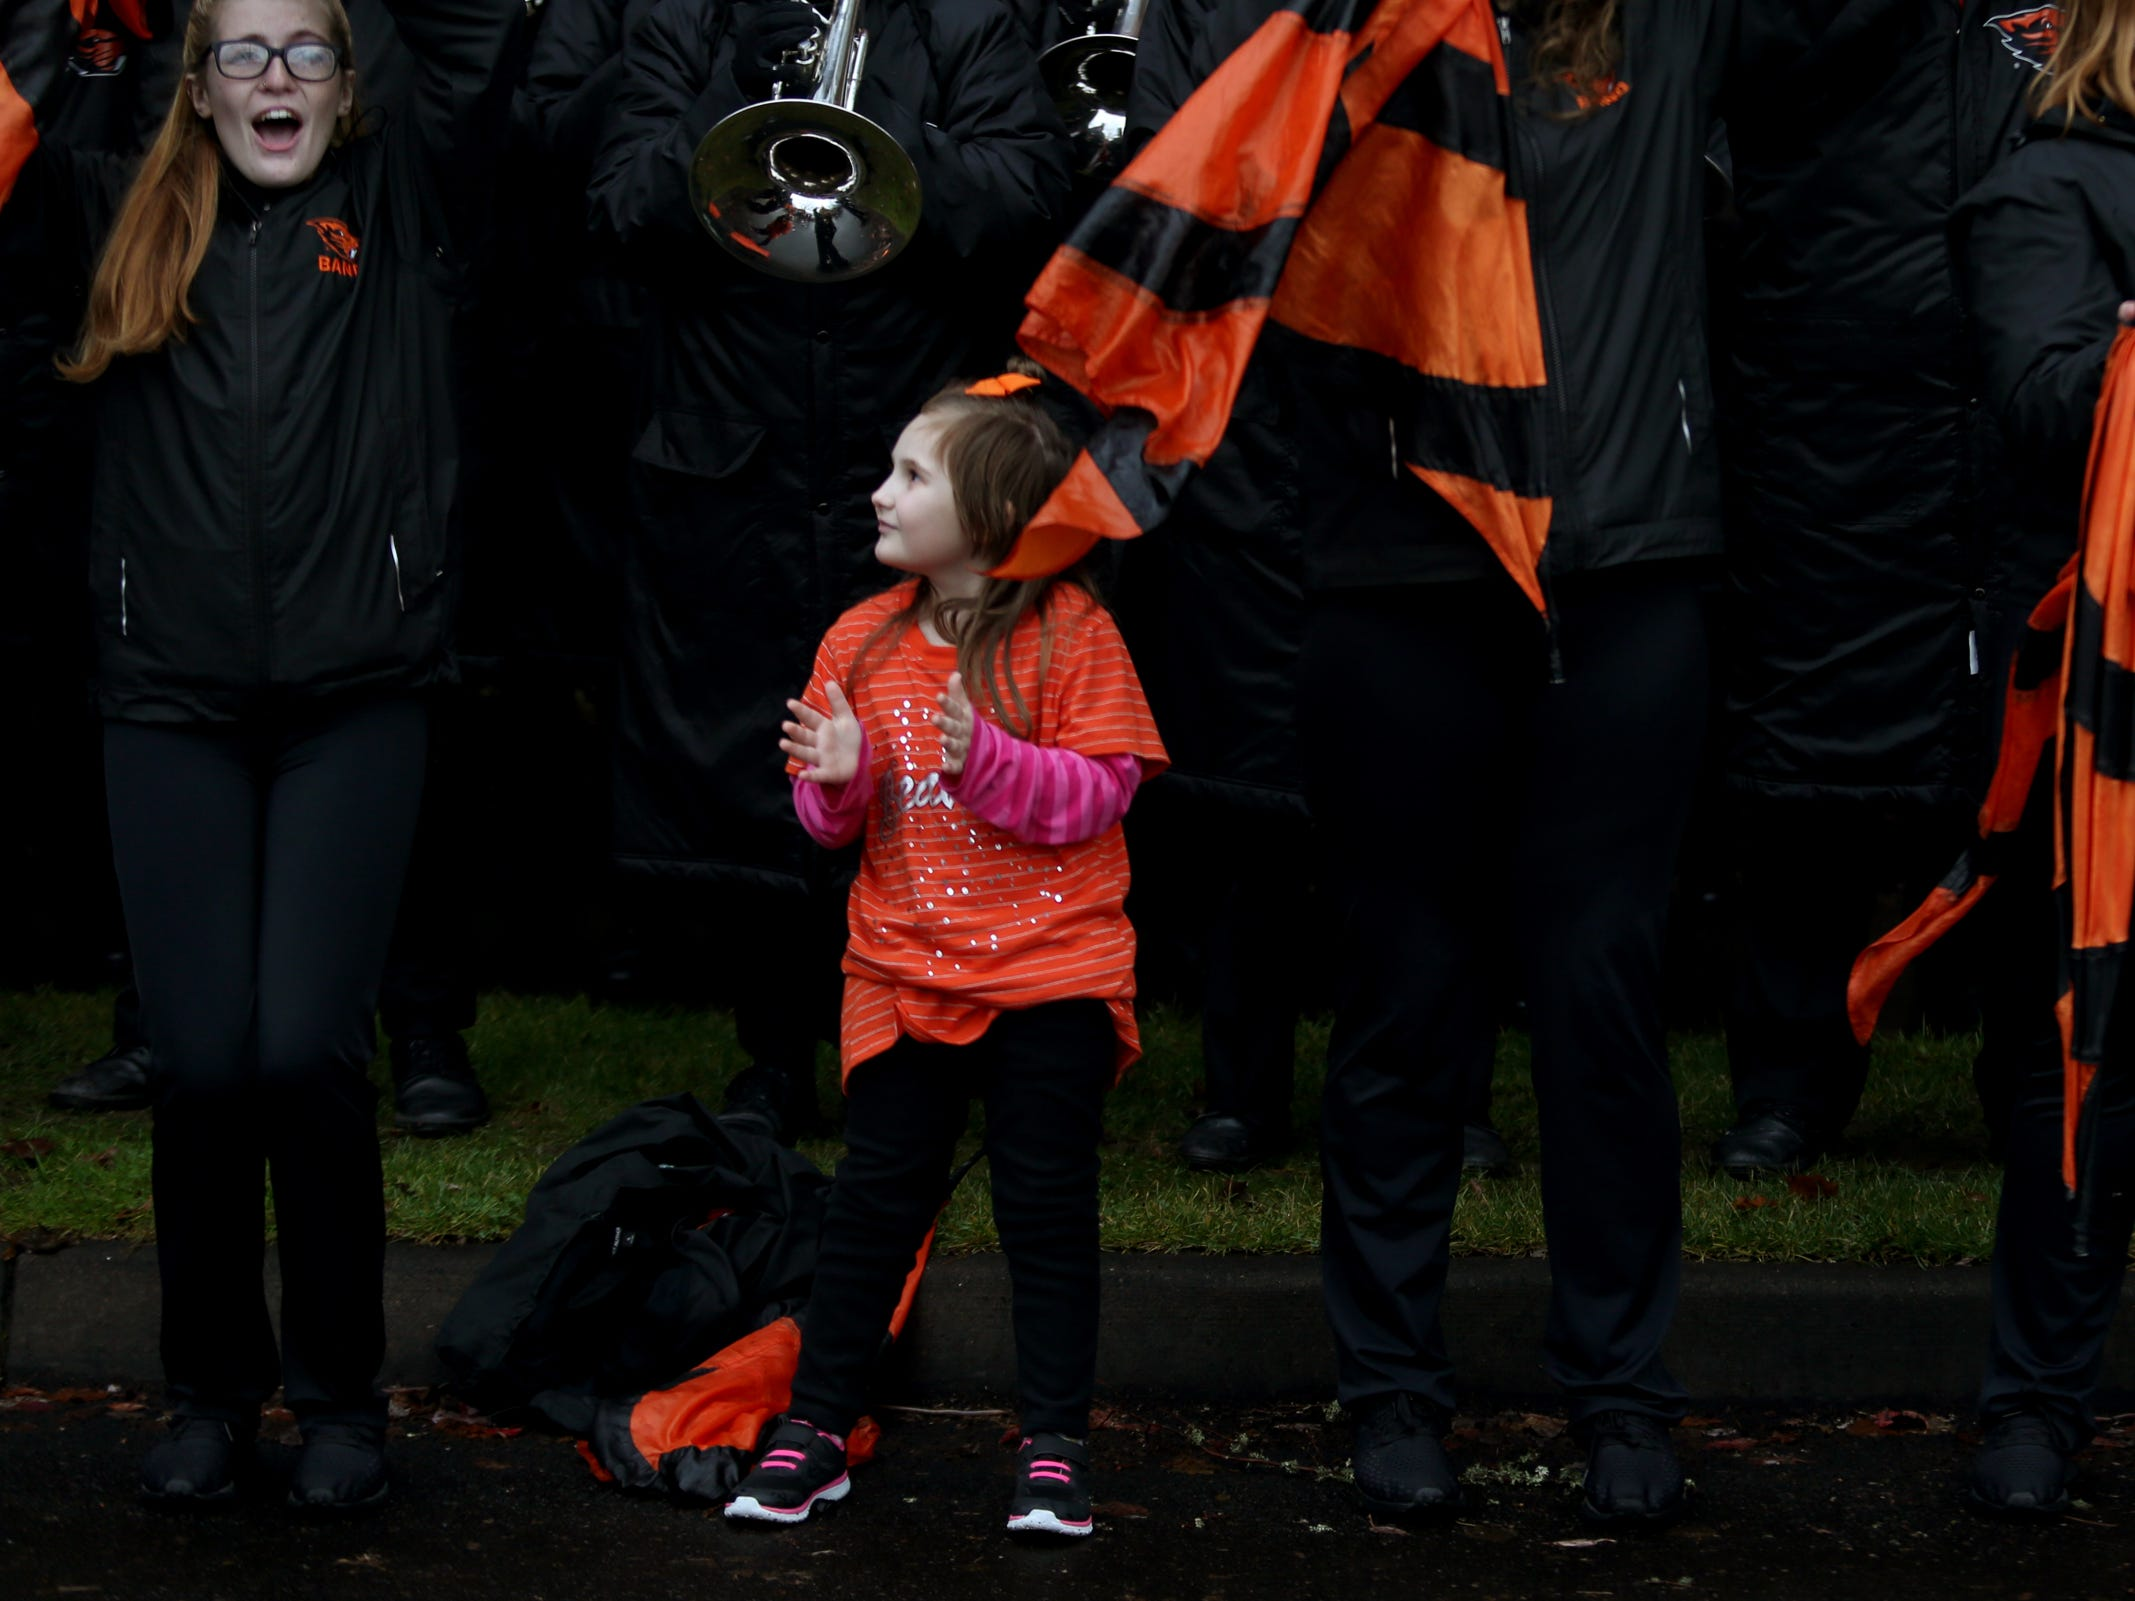 A girl stands with the Oregon State marching band before the start of the Oregon vs. Oregon State Civil war football game at Oregon State University in Corvallis on Friday, Nov. 23, 2018.